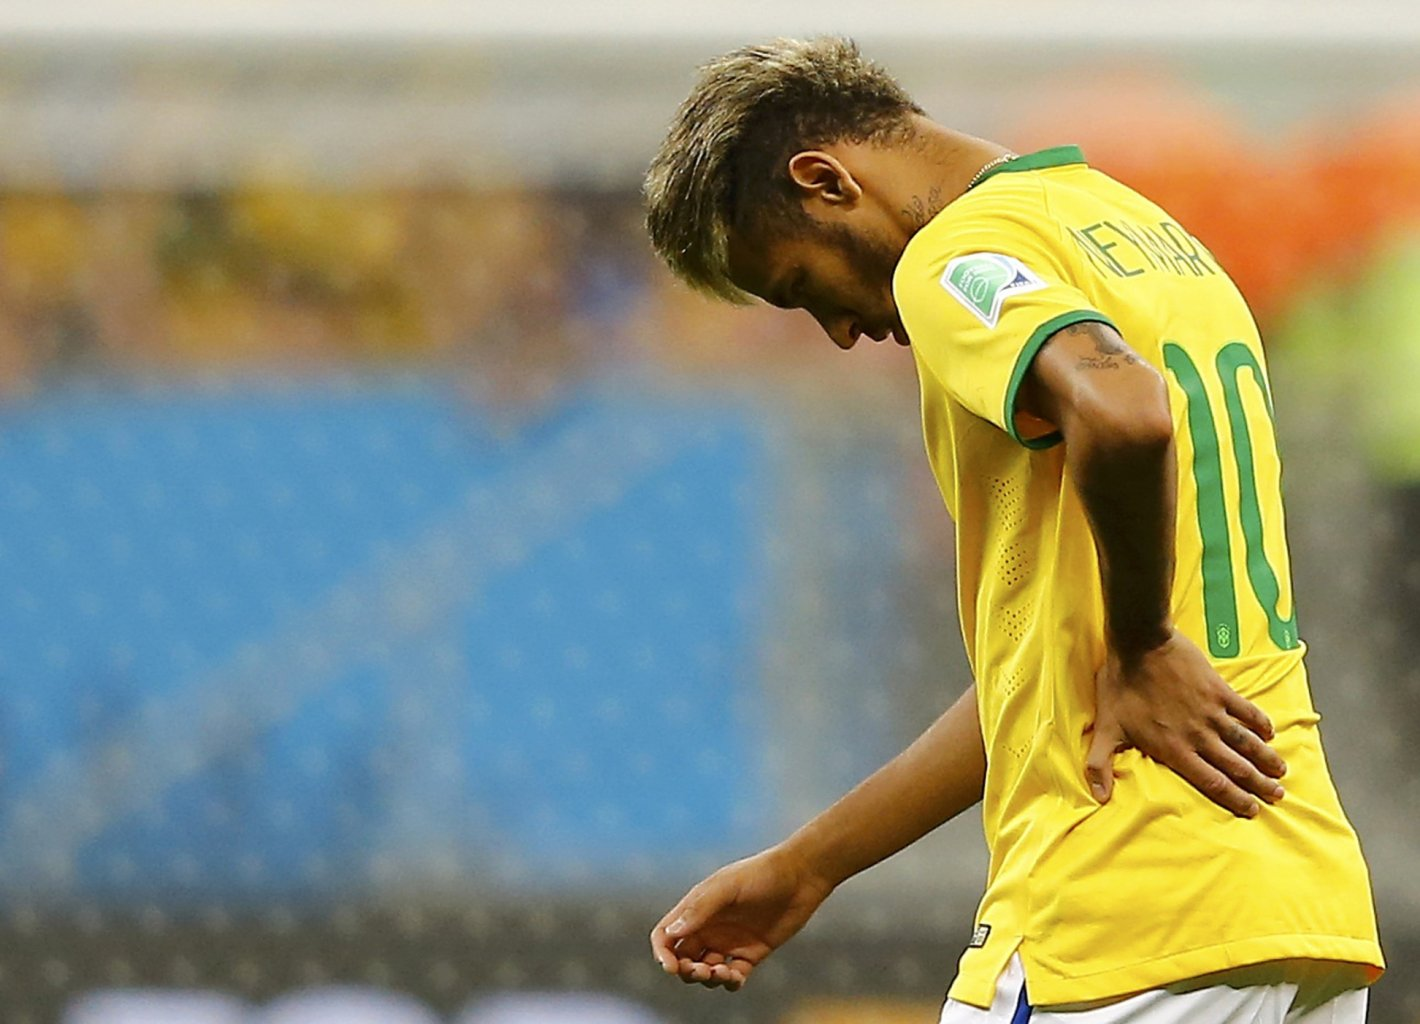 Neymar with pain on his back